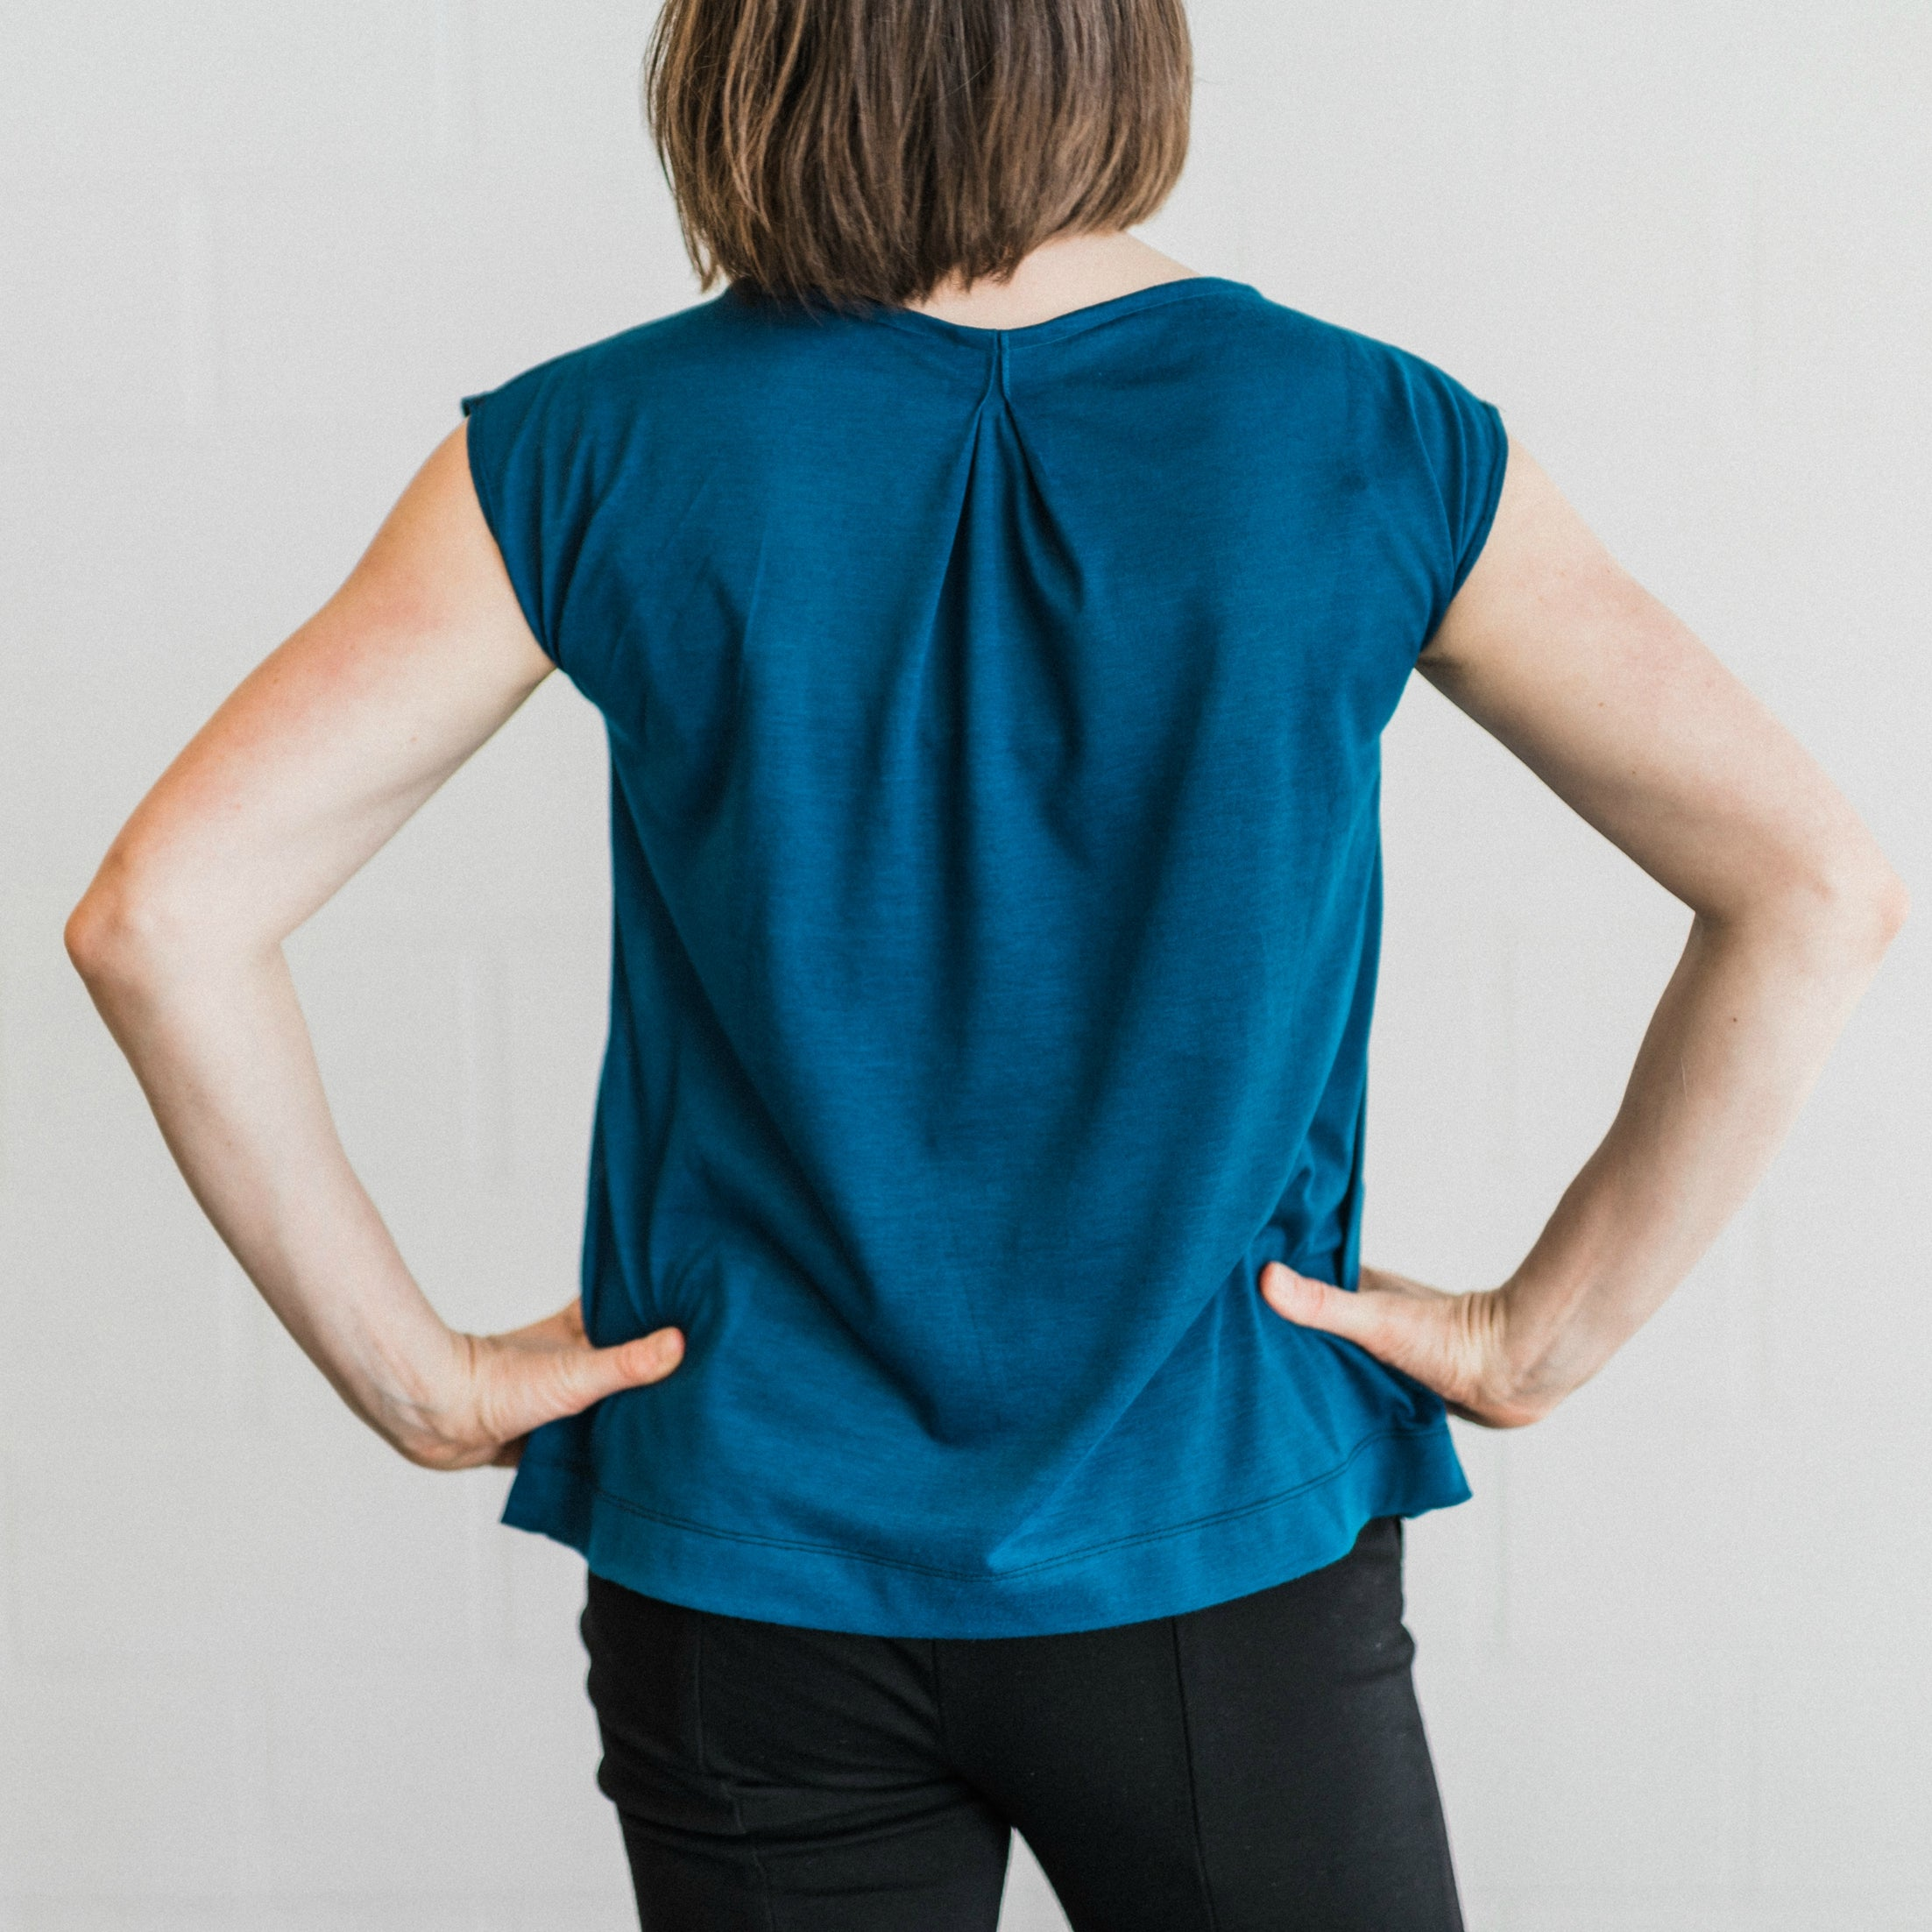 Single Tuck Drape Top - Teal